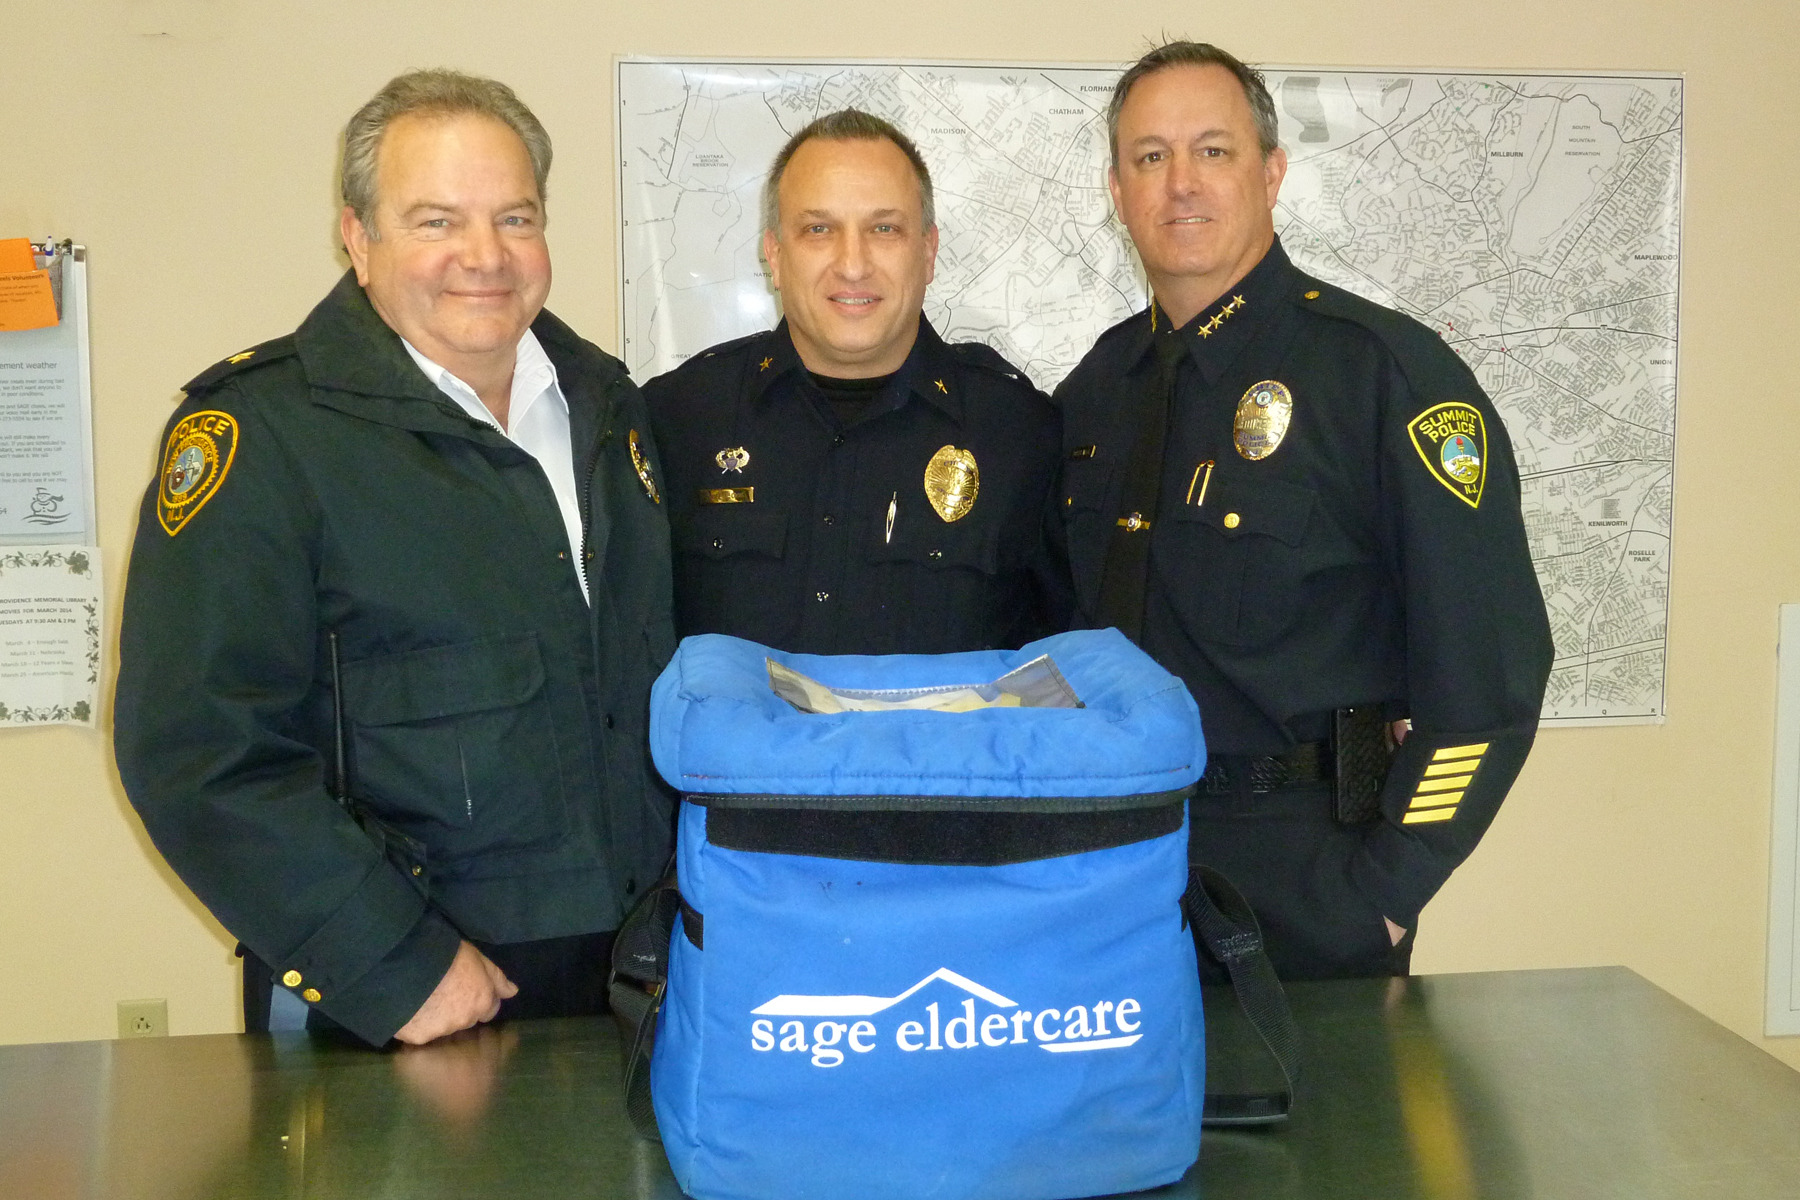 c2b6d78b66dbbc0d5bfd_Mar_19_Police_Chiefs_Buccelli__Cook_and_Weck.jpg